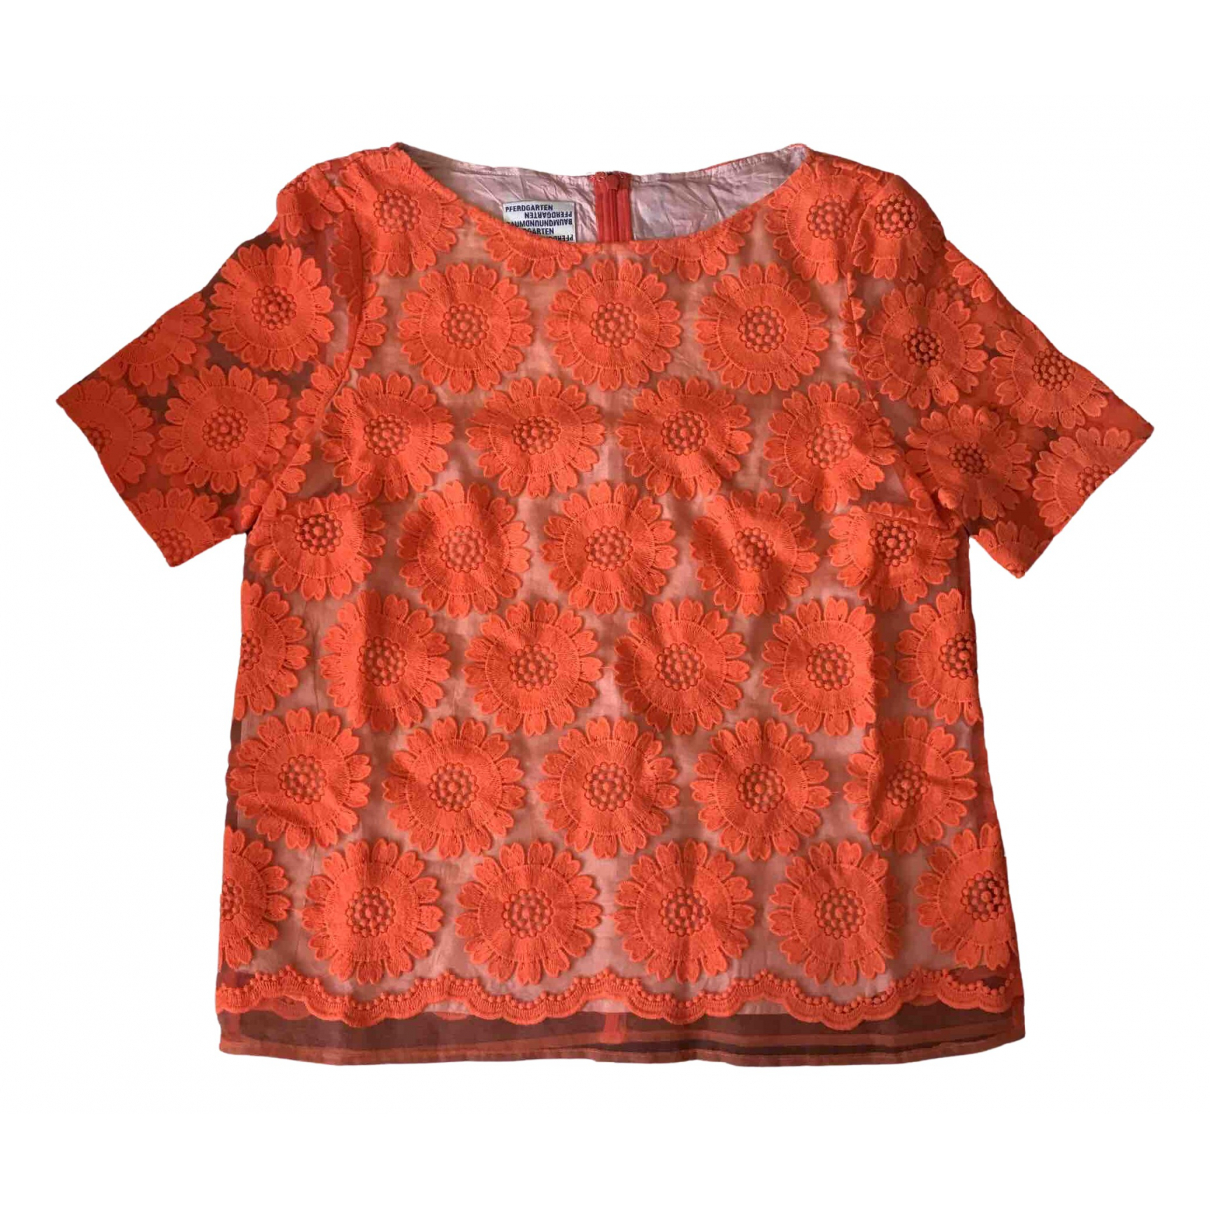 Baum Und Pferdgarten \N Orange  top for Women 38 FR